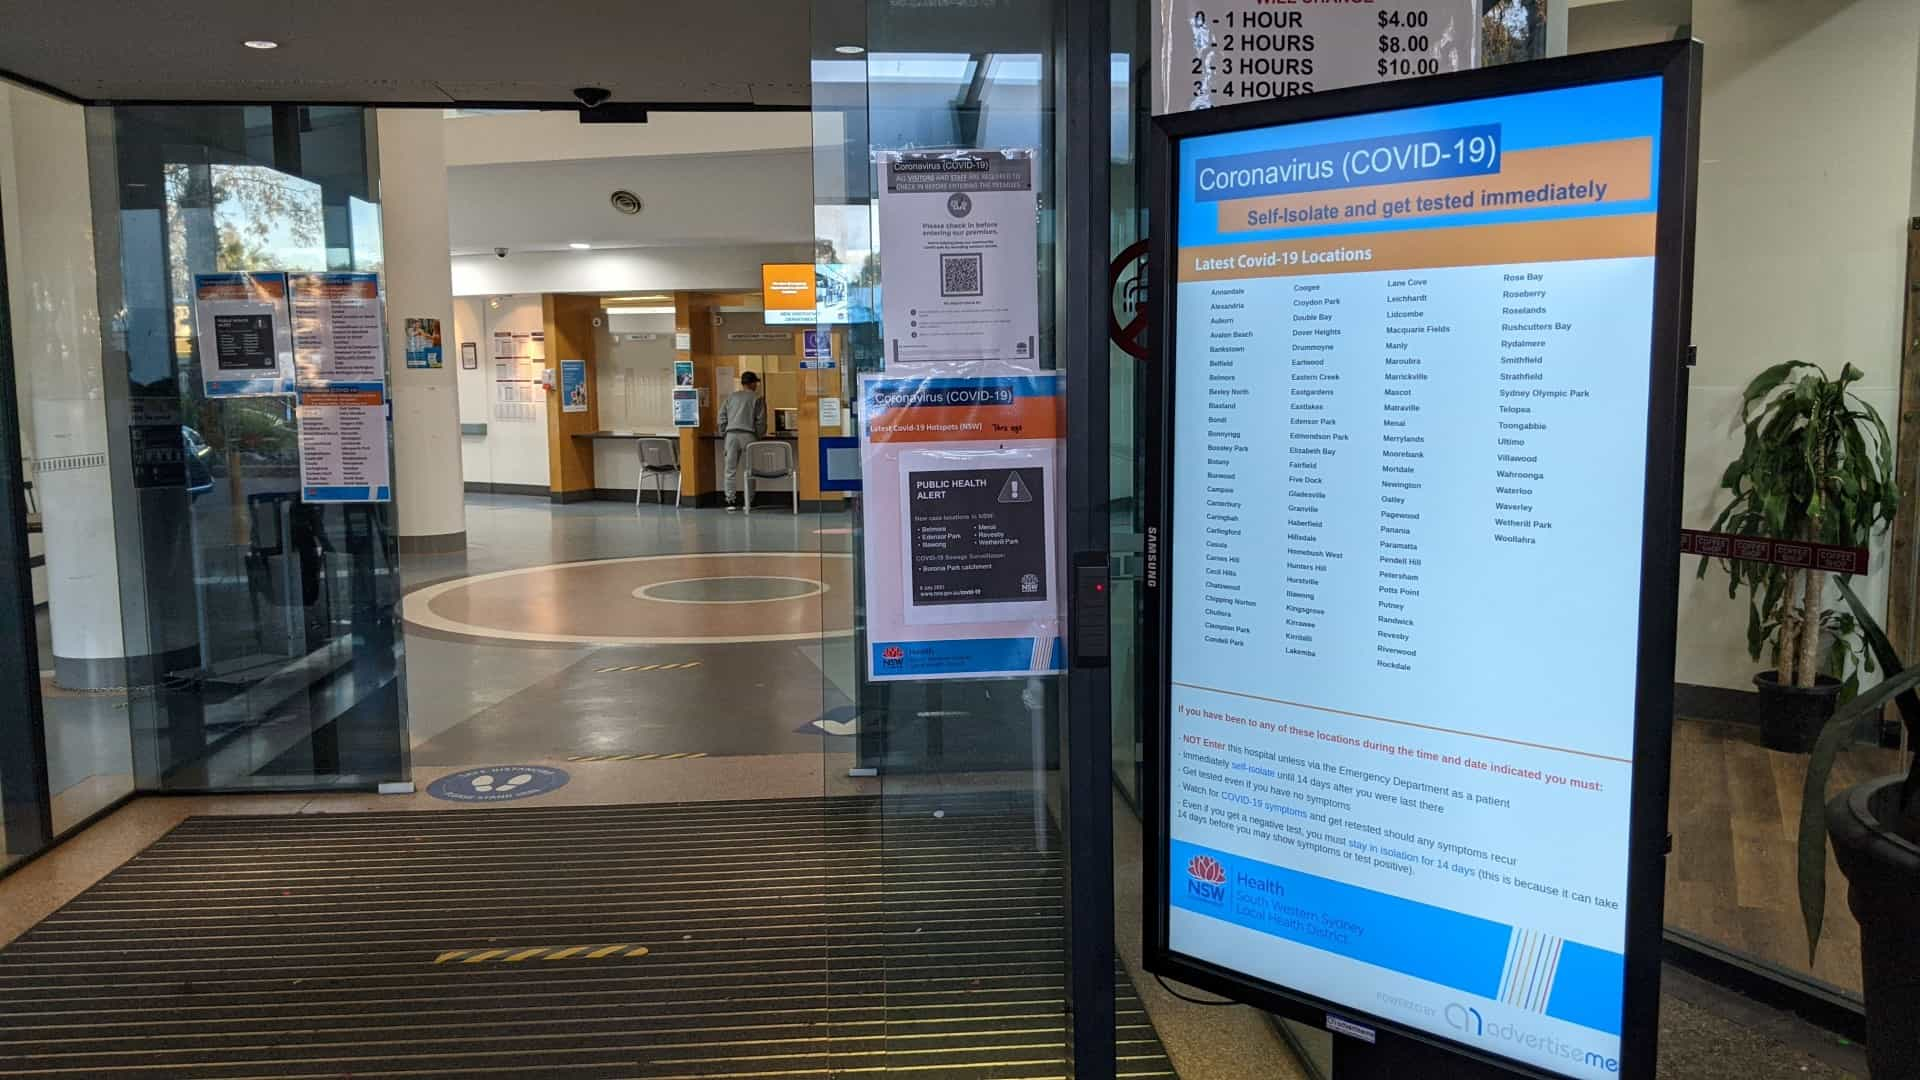 Advertise Me Bankstown Hospital Covid 19 screening station solution main entrance